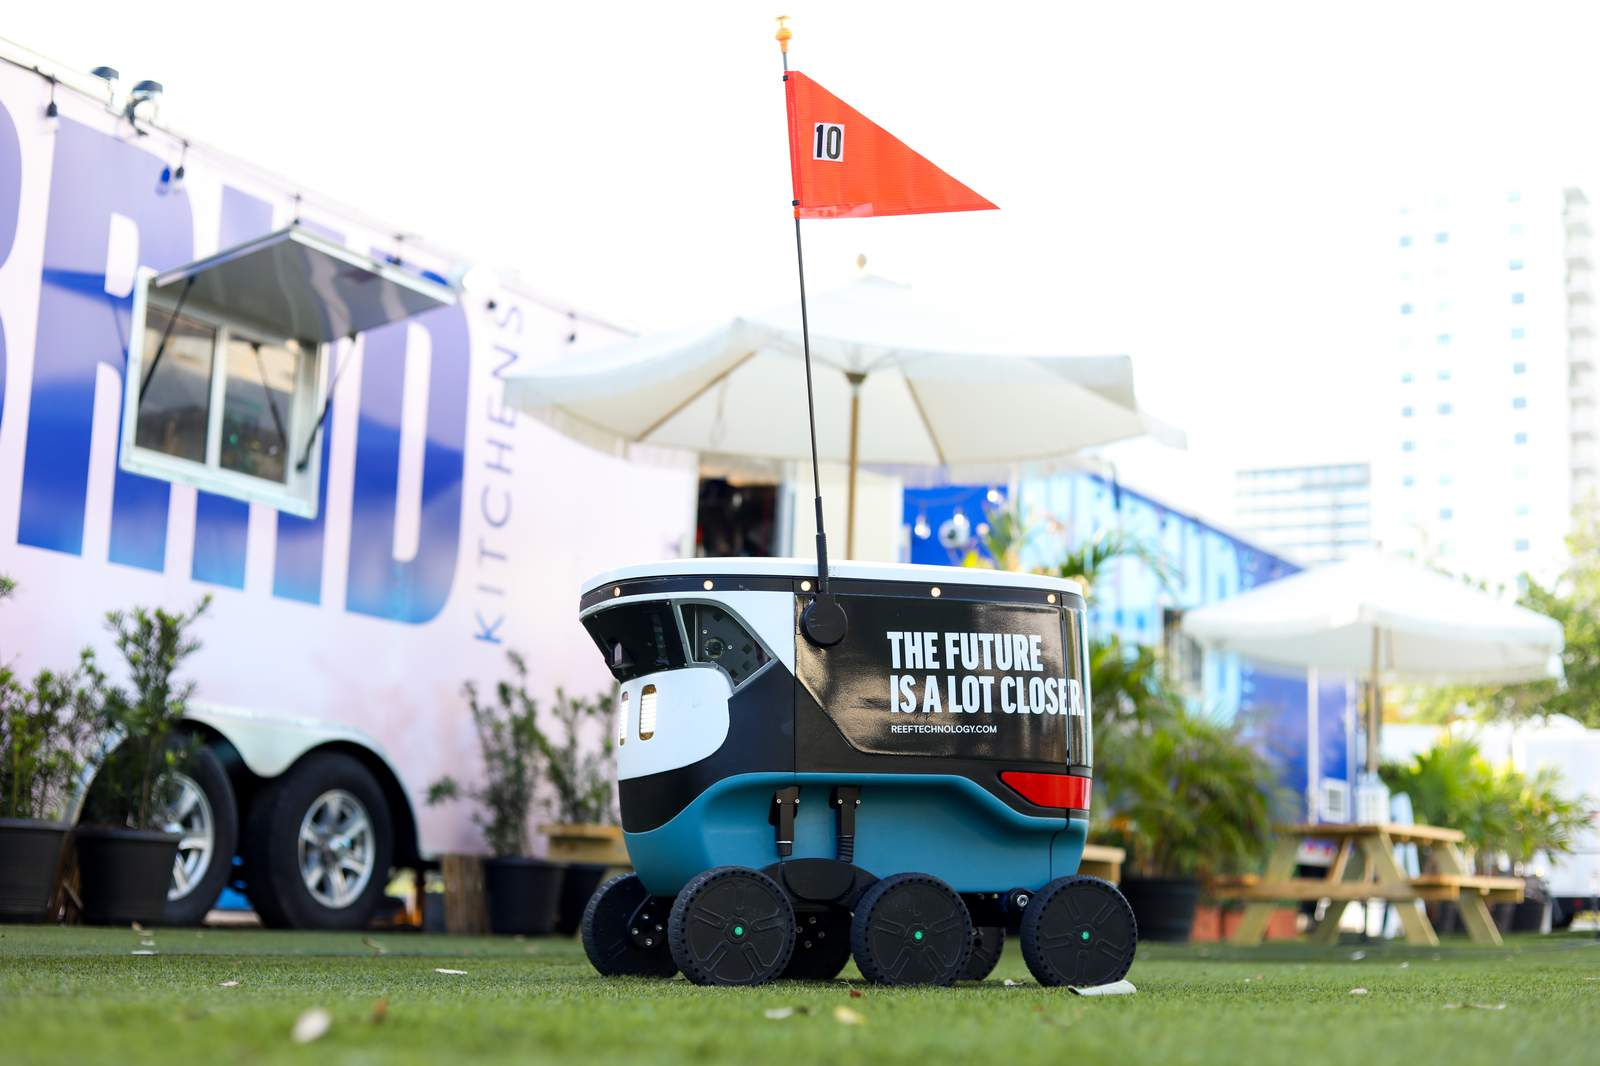 REEF robotic deliveries have arrived in Miami